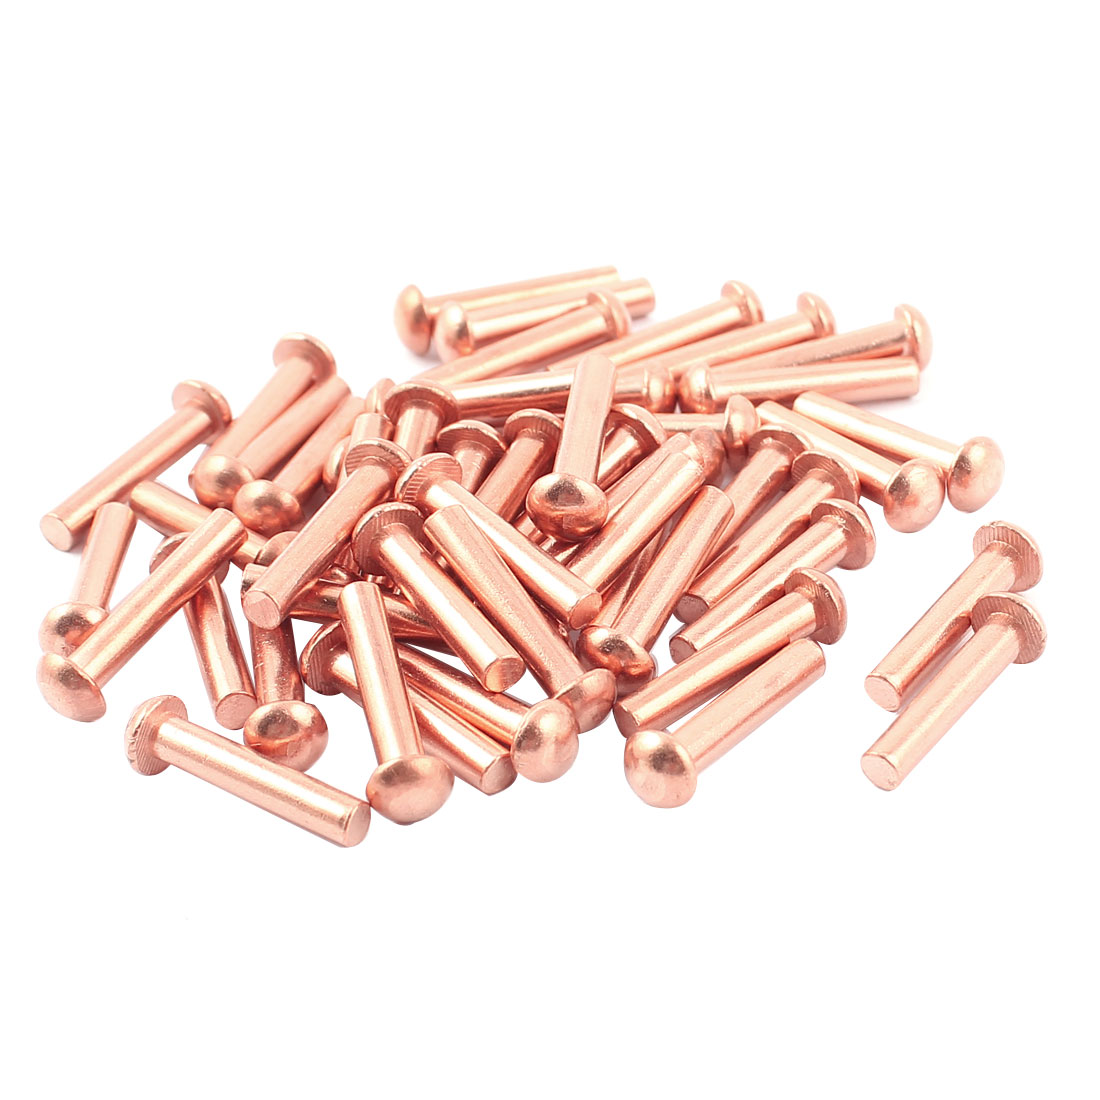 "50 Pcs 5/32"" x 25/32"" Round Head Copper Solid Rivets Fasteners"